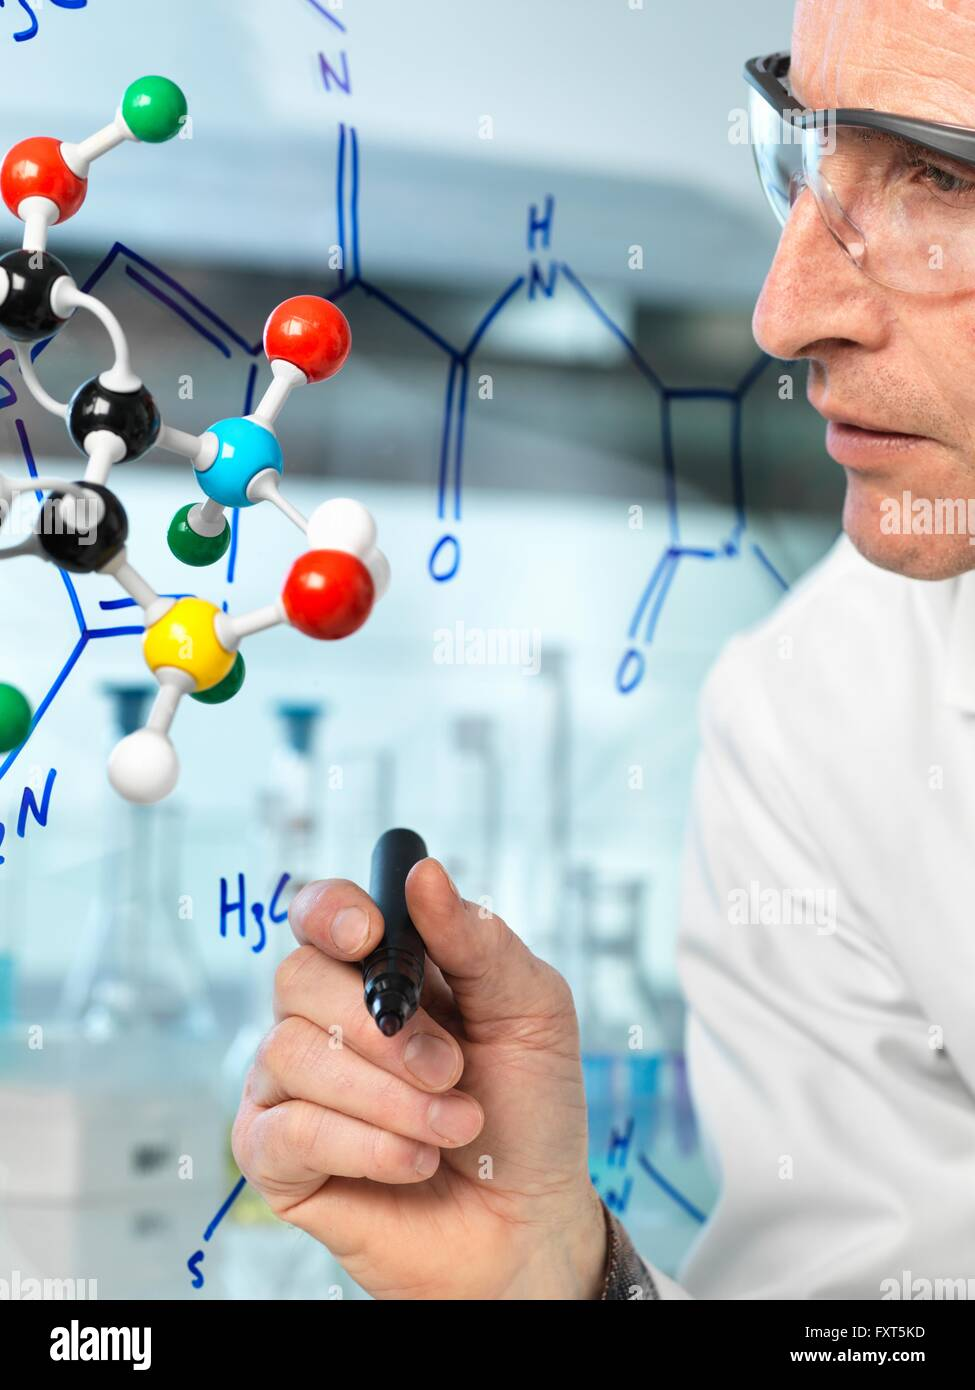 Scientist with ball and stick molecular model writing formula of new drug on glass - Stock Image